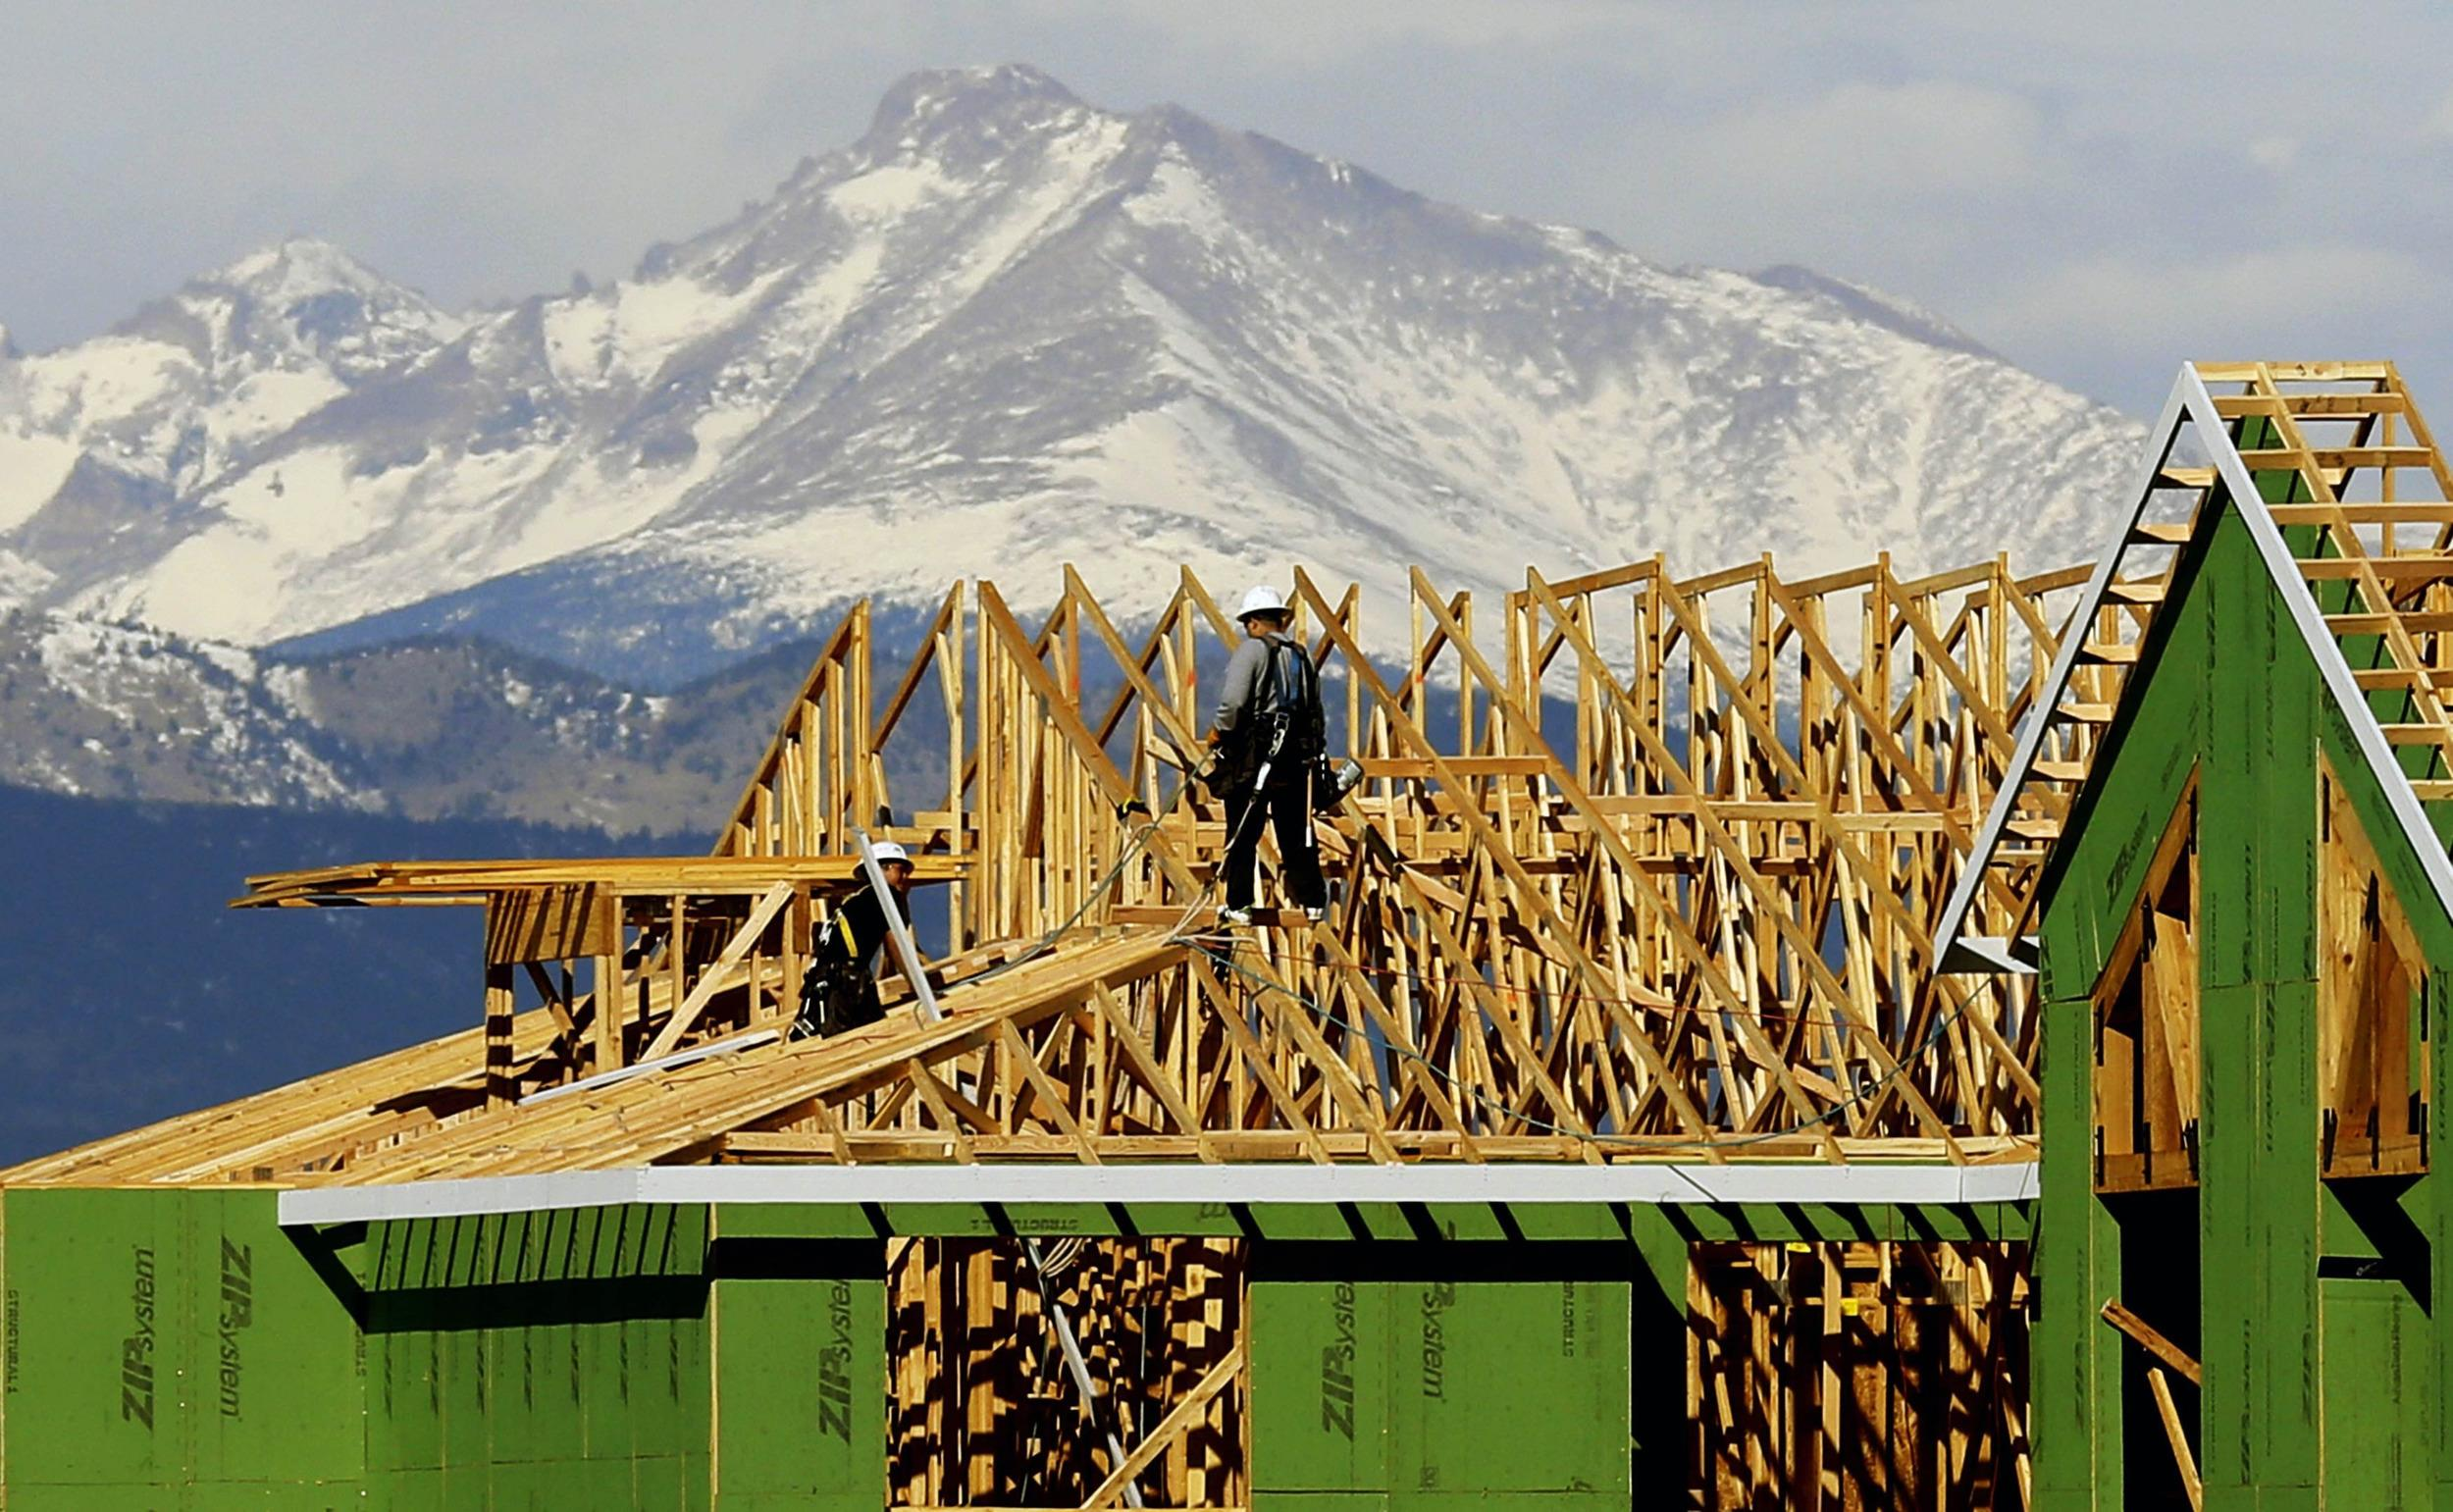 Housing starts fell for a third straight month, with the Northeast especially hit by severe cold weather